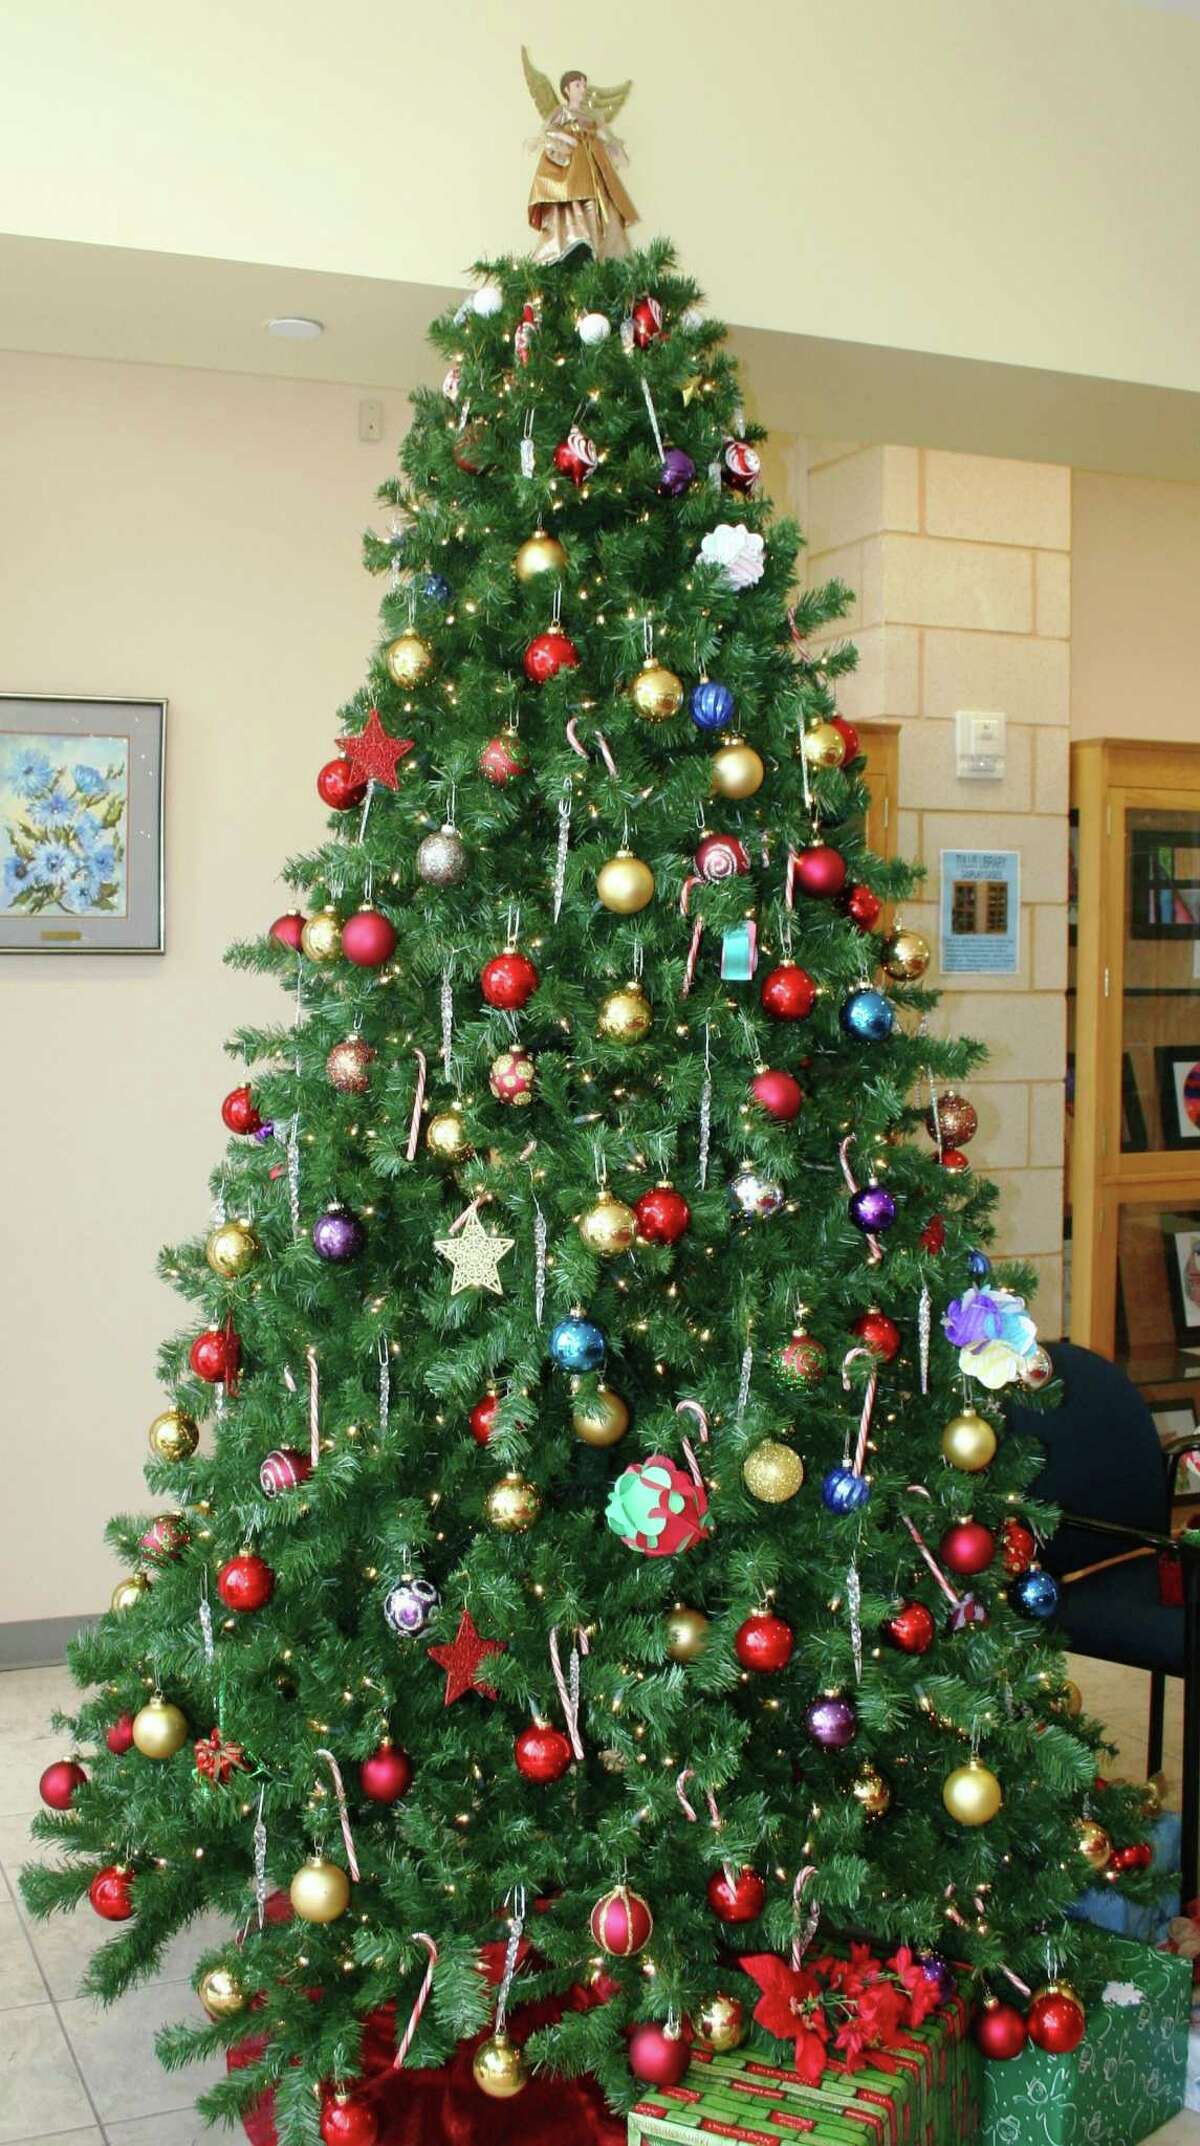 Visitors to Fort Bend County Libraries will enjoy free holiday activities on Dec. 8.